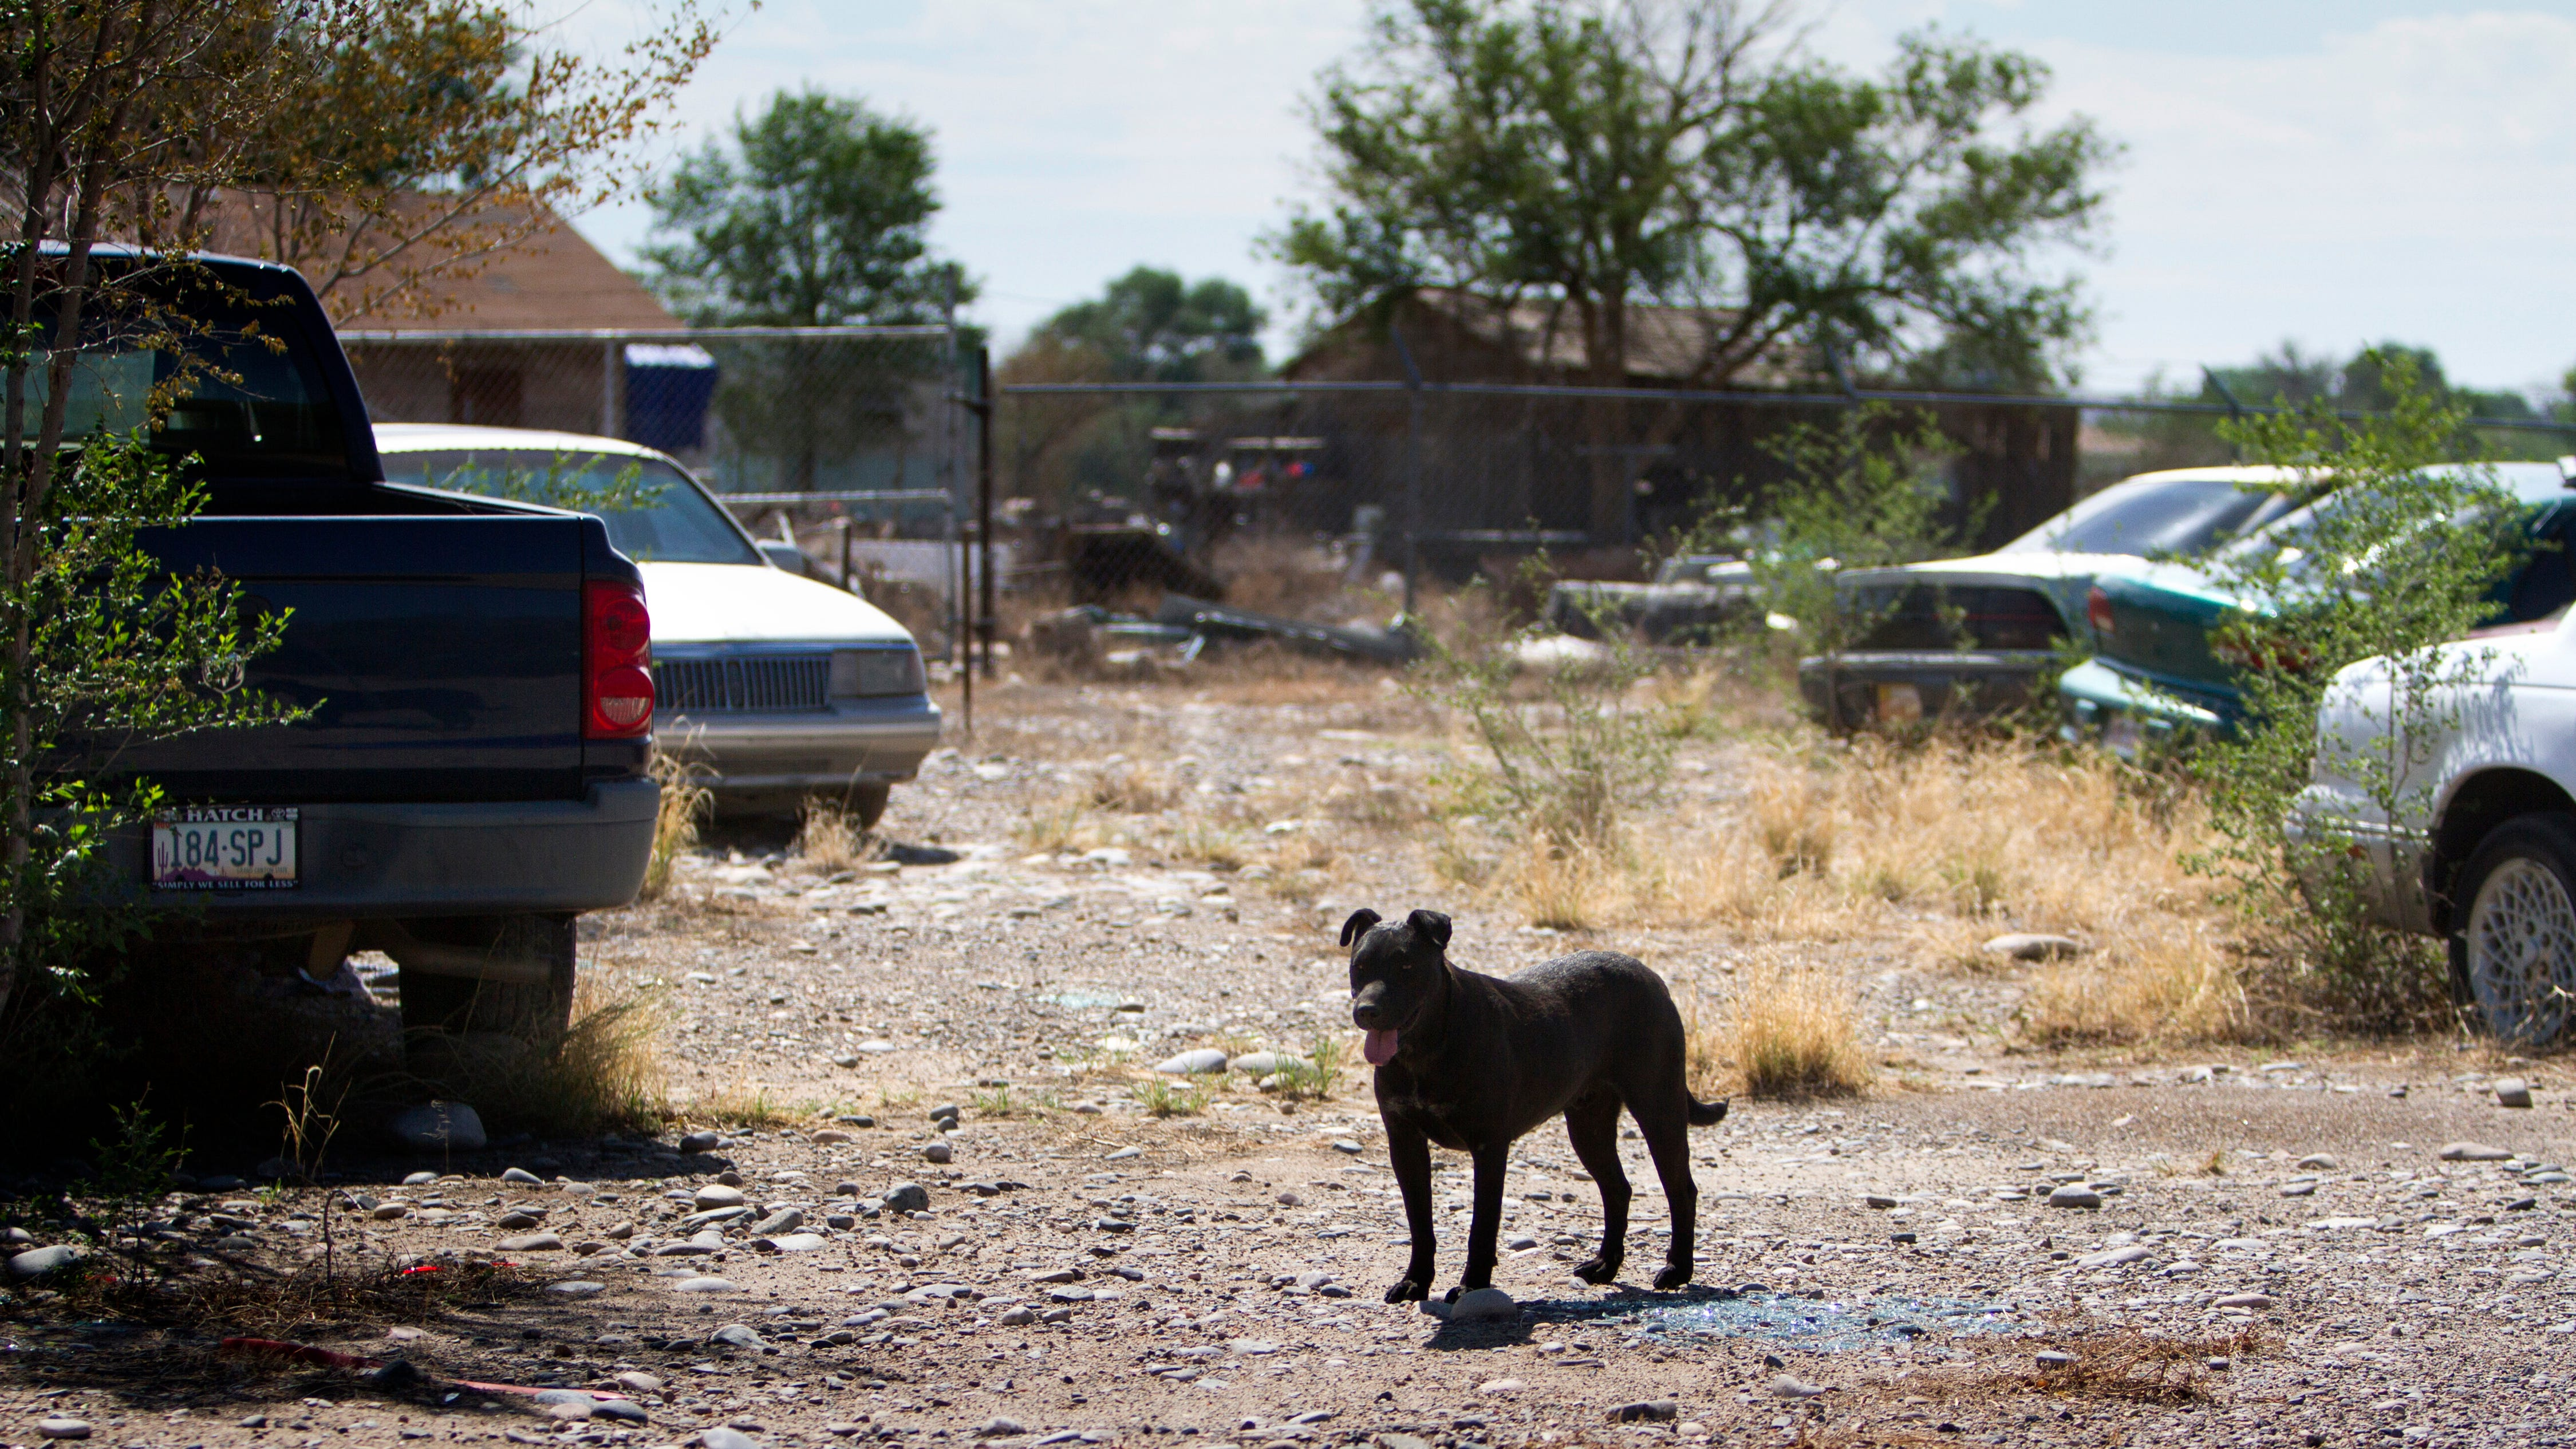 A dog hangs out, July 24, 2018 at the former location of Darrell's Automotive Garage in Shiprock.